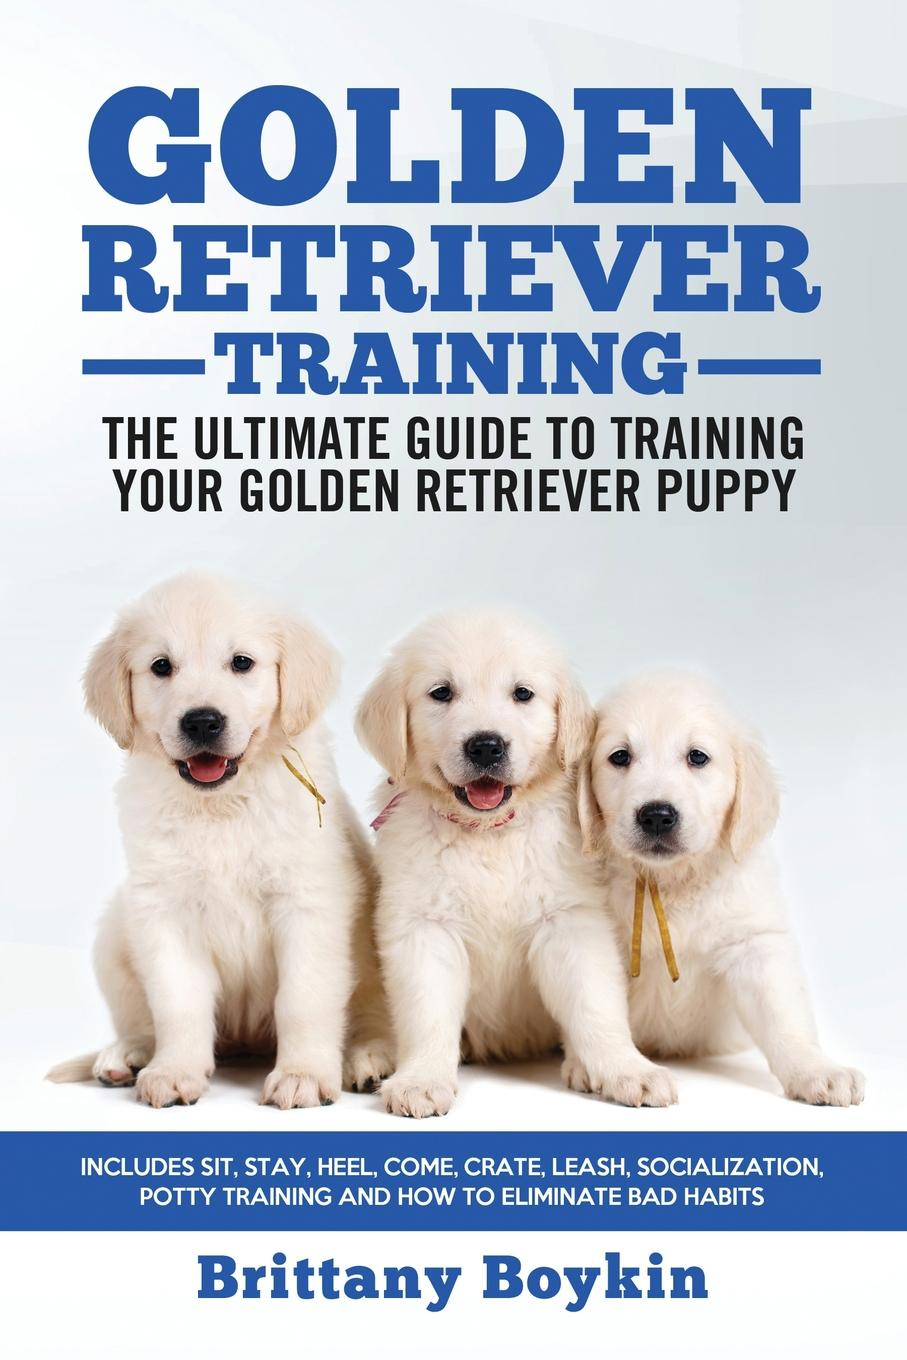 Brittany Boykin Golden Retriever Training - the Ultimate Guide to Training Your Golden Retriever Puppy. Includes Sit, Stay, Heel, Come, Crate, Leash, Socialization, Potty Training and How to Eliminate Bad Habits vince stead how to understand and train your golden retriever puppy or dog